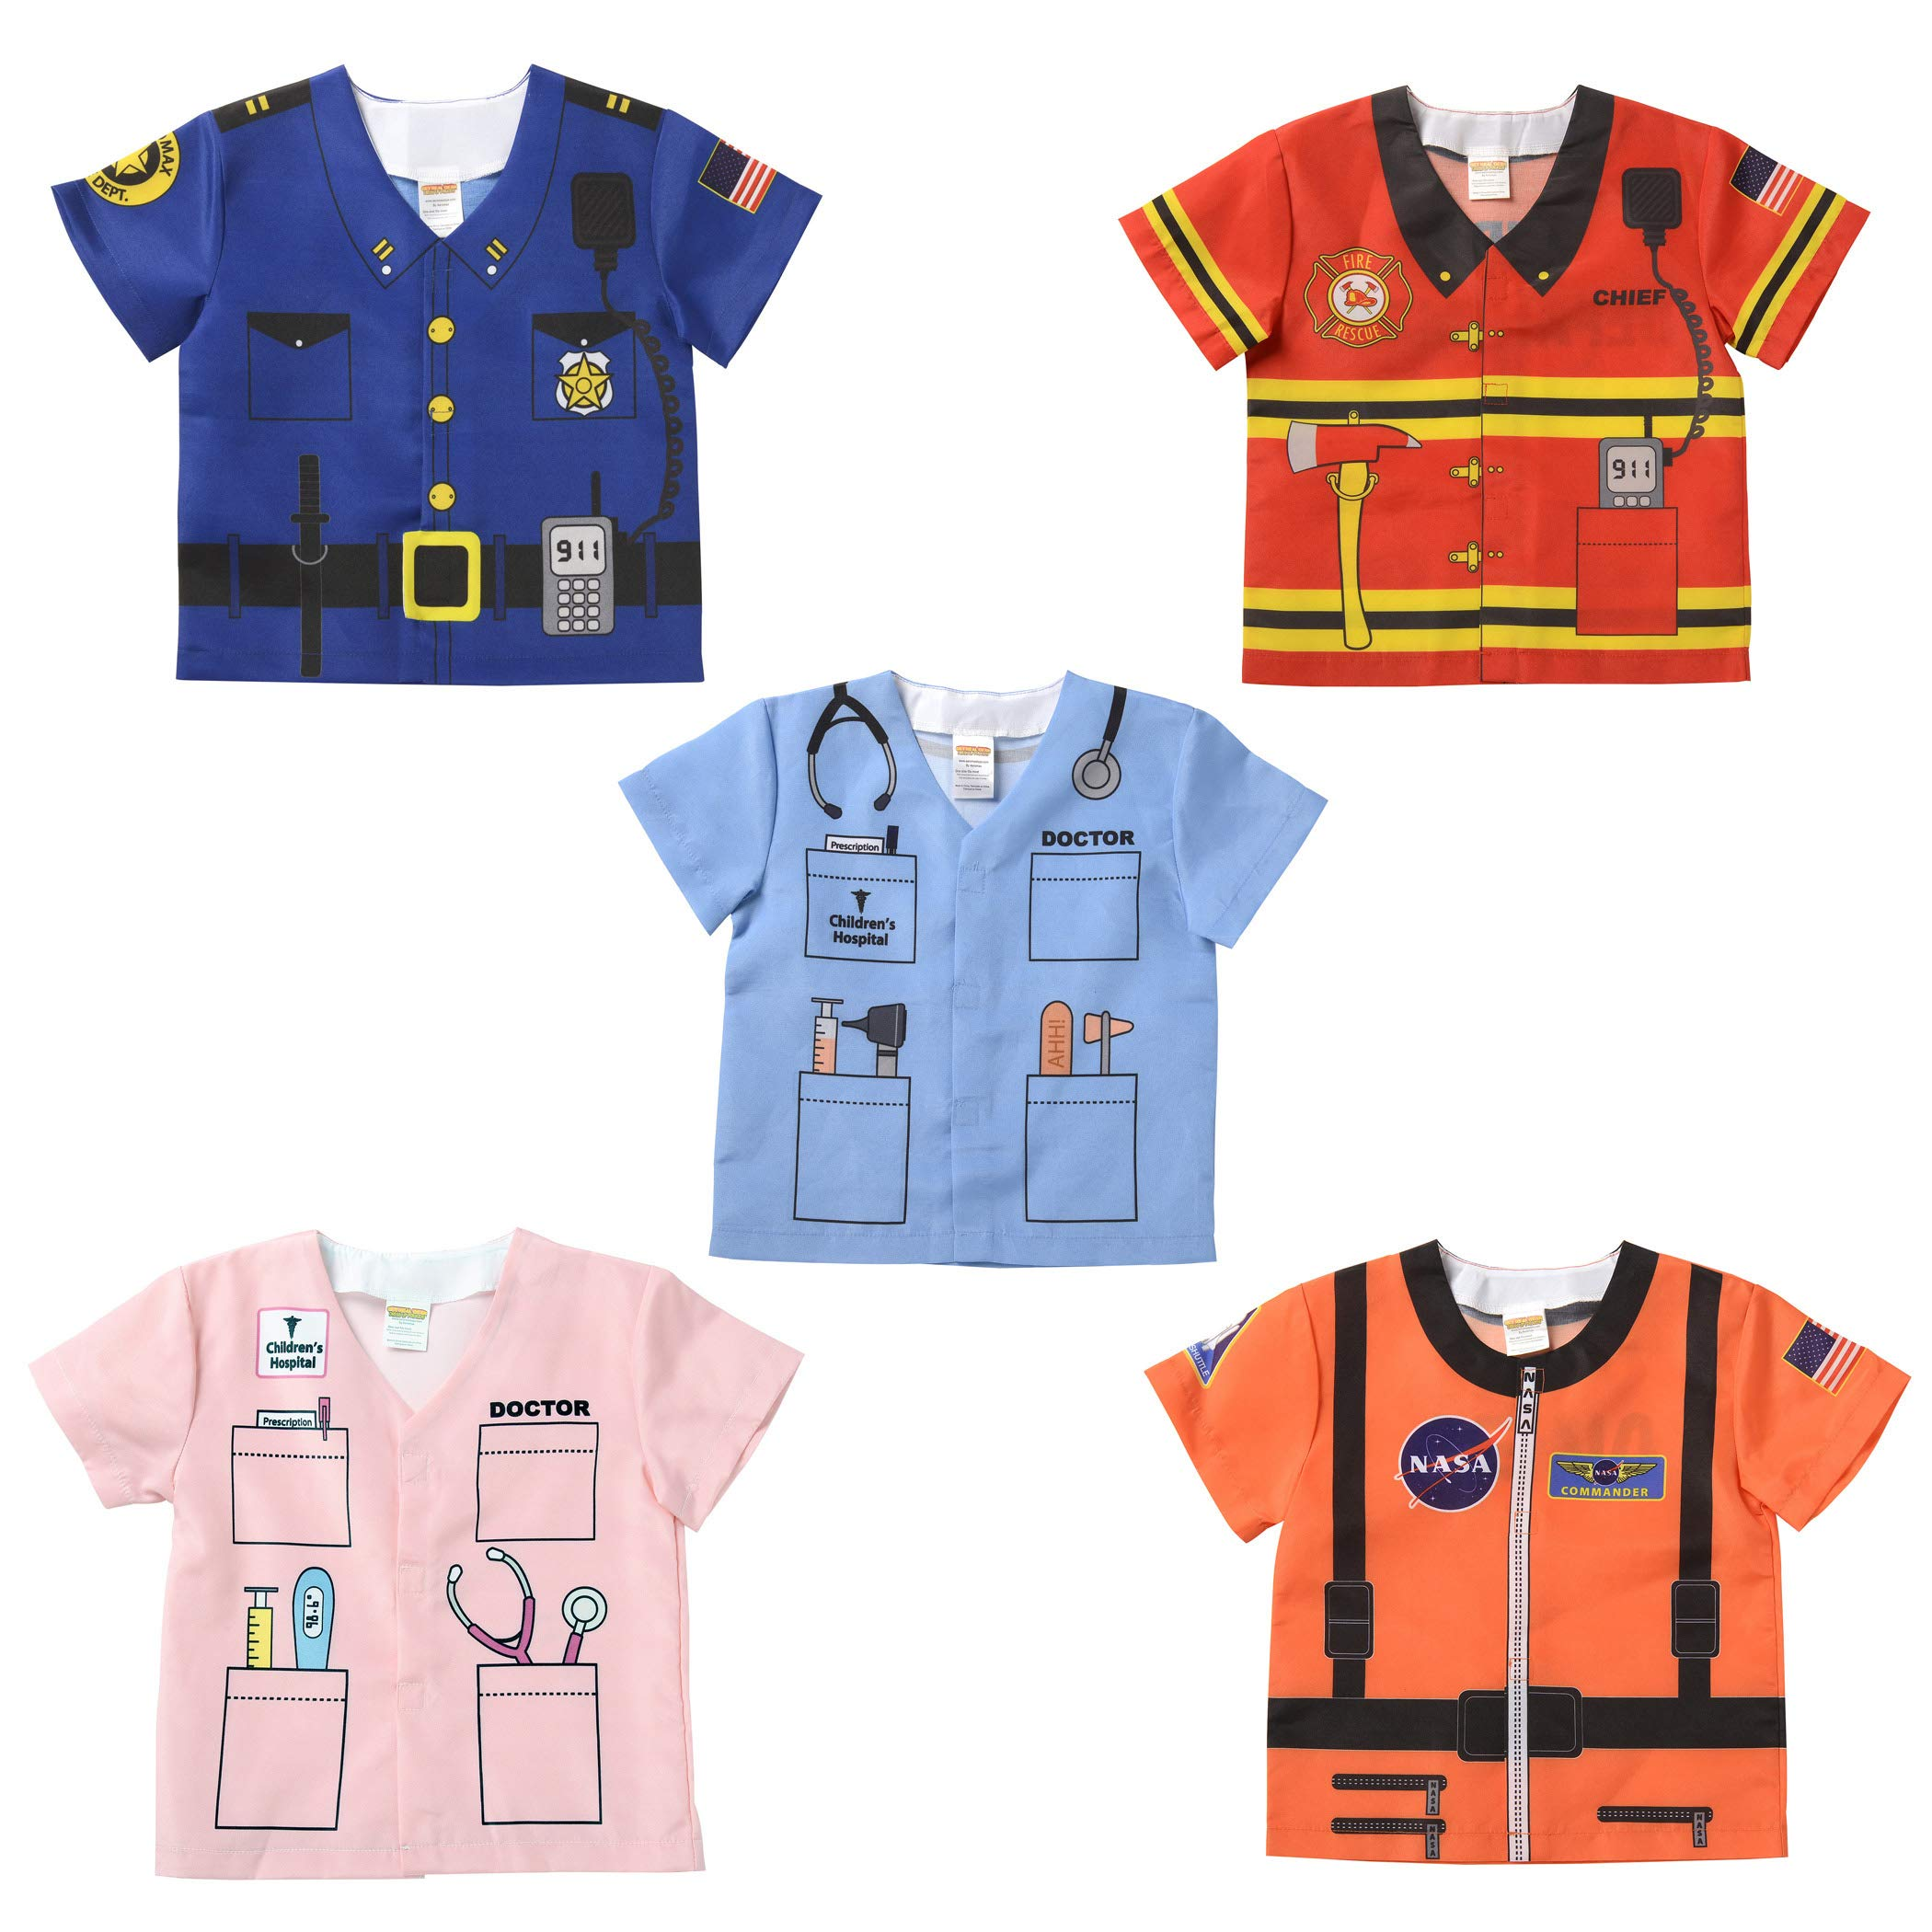 Aeromax, Inc. My 1st Career Gear Toddler Assortment-C, 5 Piece Set, Ages 18-36 Months by Aeromax, Inc.